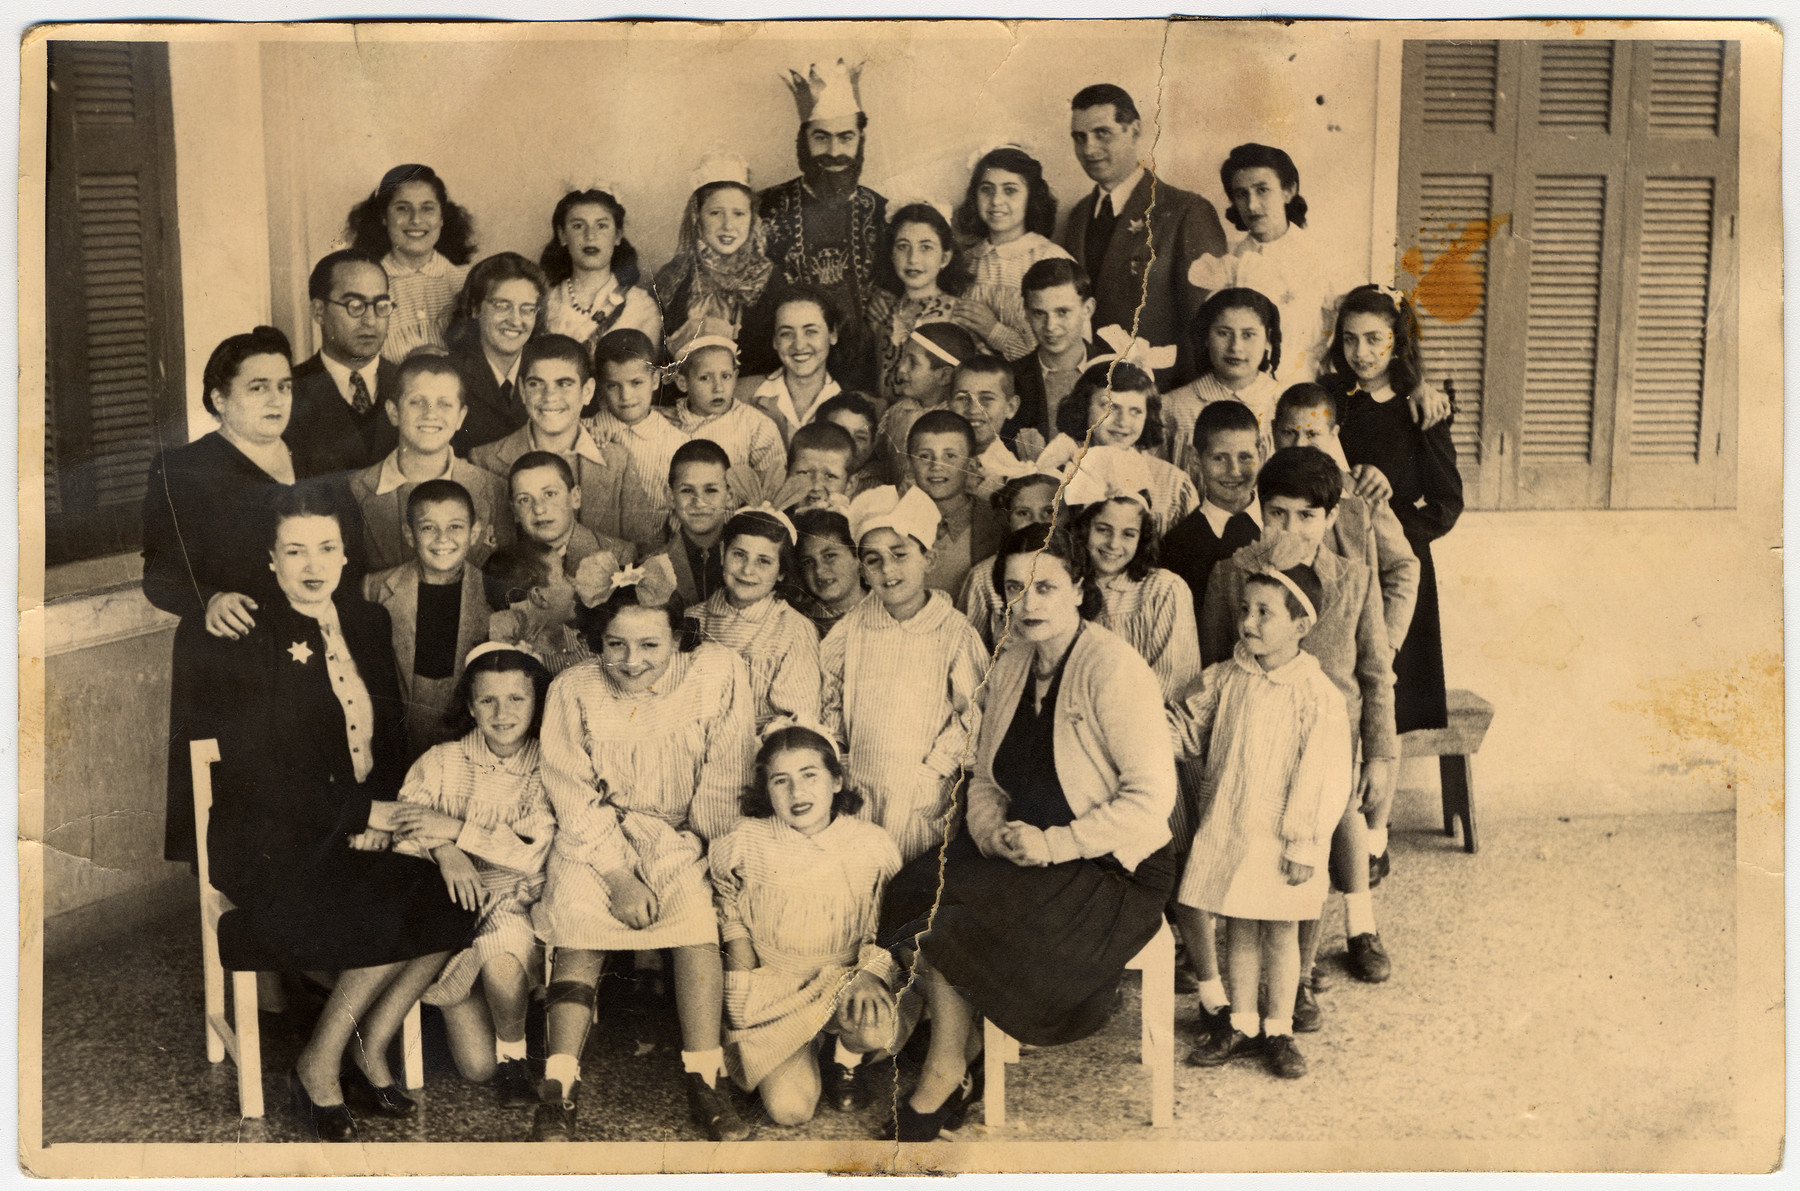 Group portrait of Jewish children and staff, some of whom are in Purim costume, in an orphanage in Athens.  Among those pictured re Evelyn and Mary Ackos.